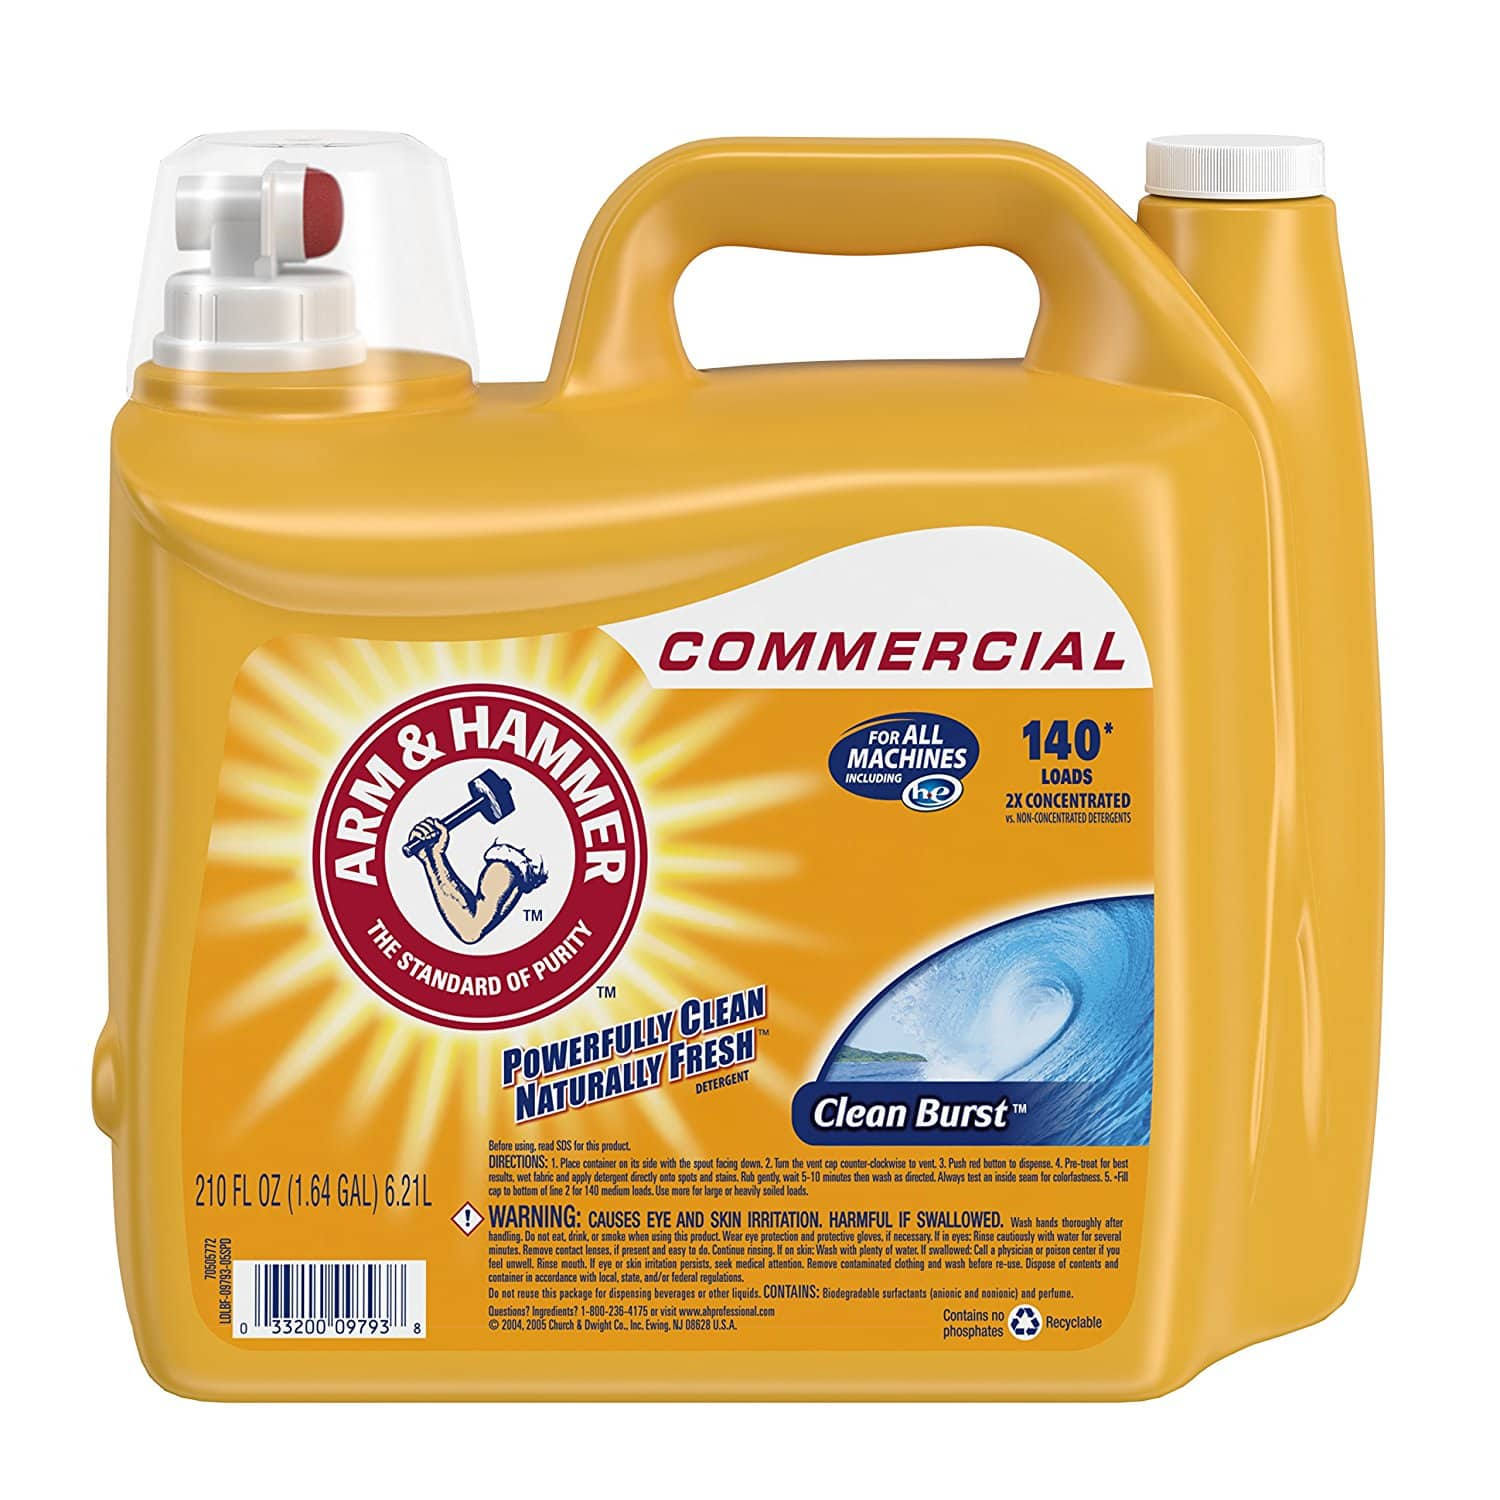 2 Count of 210 Ounce Arm & Hammer Dual HE Liquid Laundry Detergent in Clean Burst (280 total loads) - $16.98 AC ($15.98 AC & 5 S&S Orders) + Free Shipping - Amazon